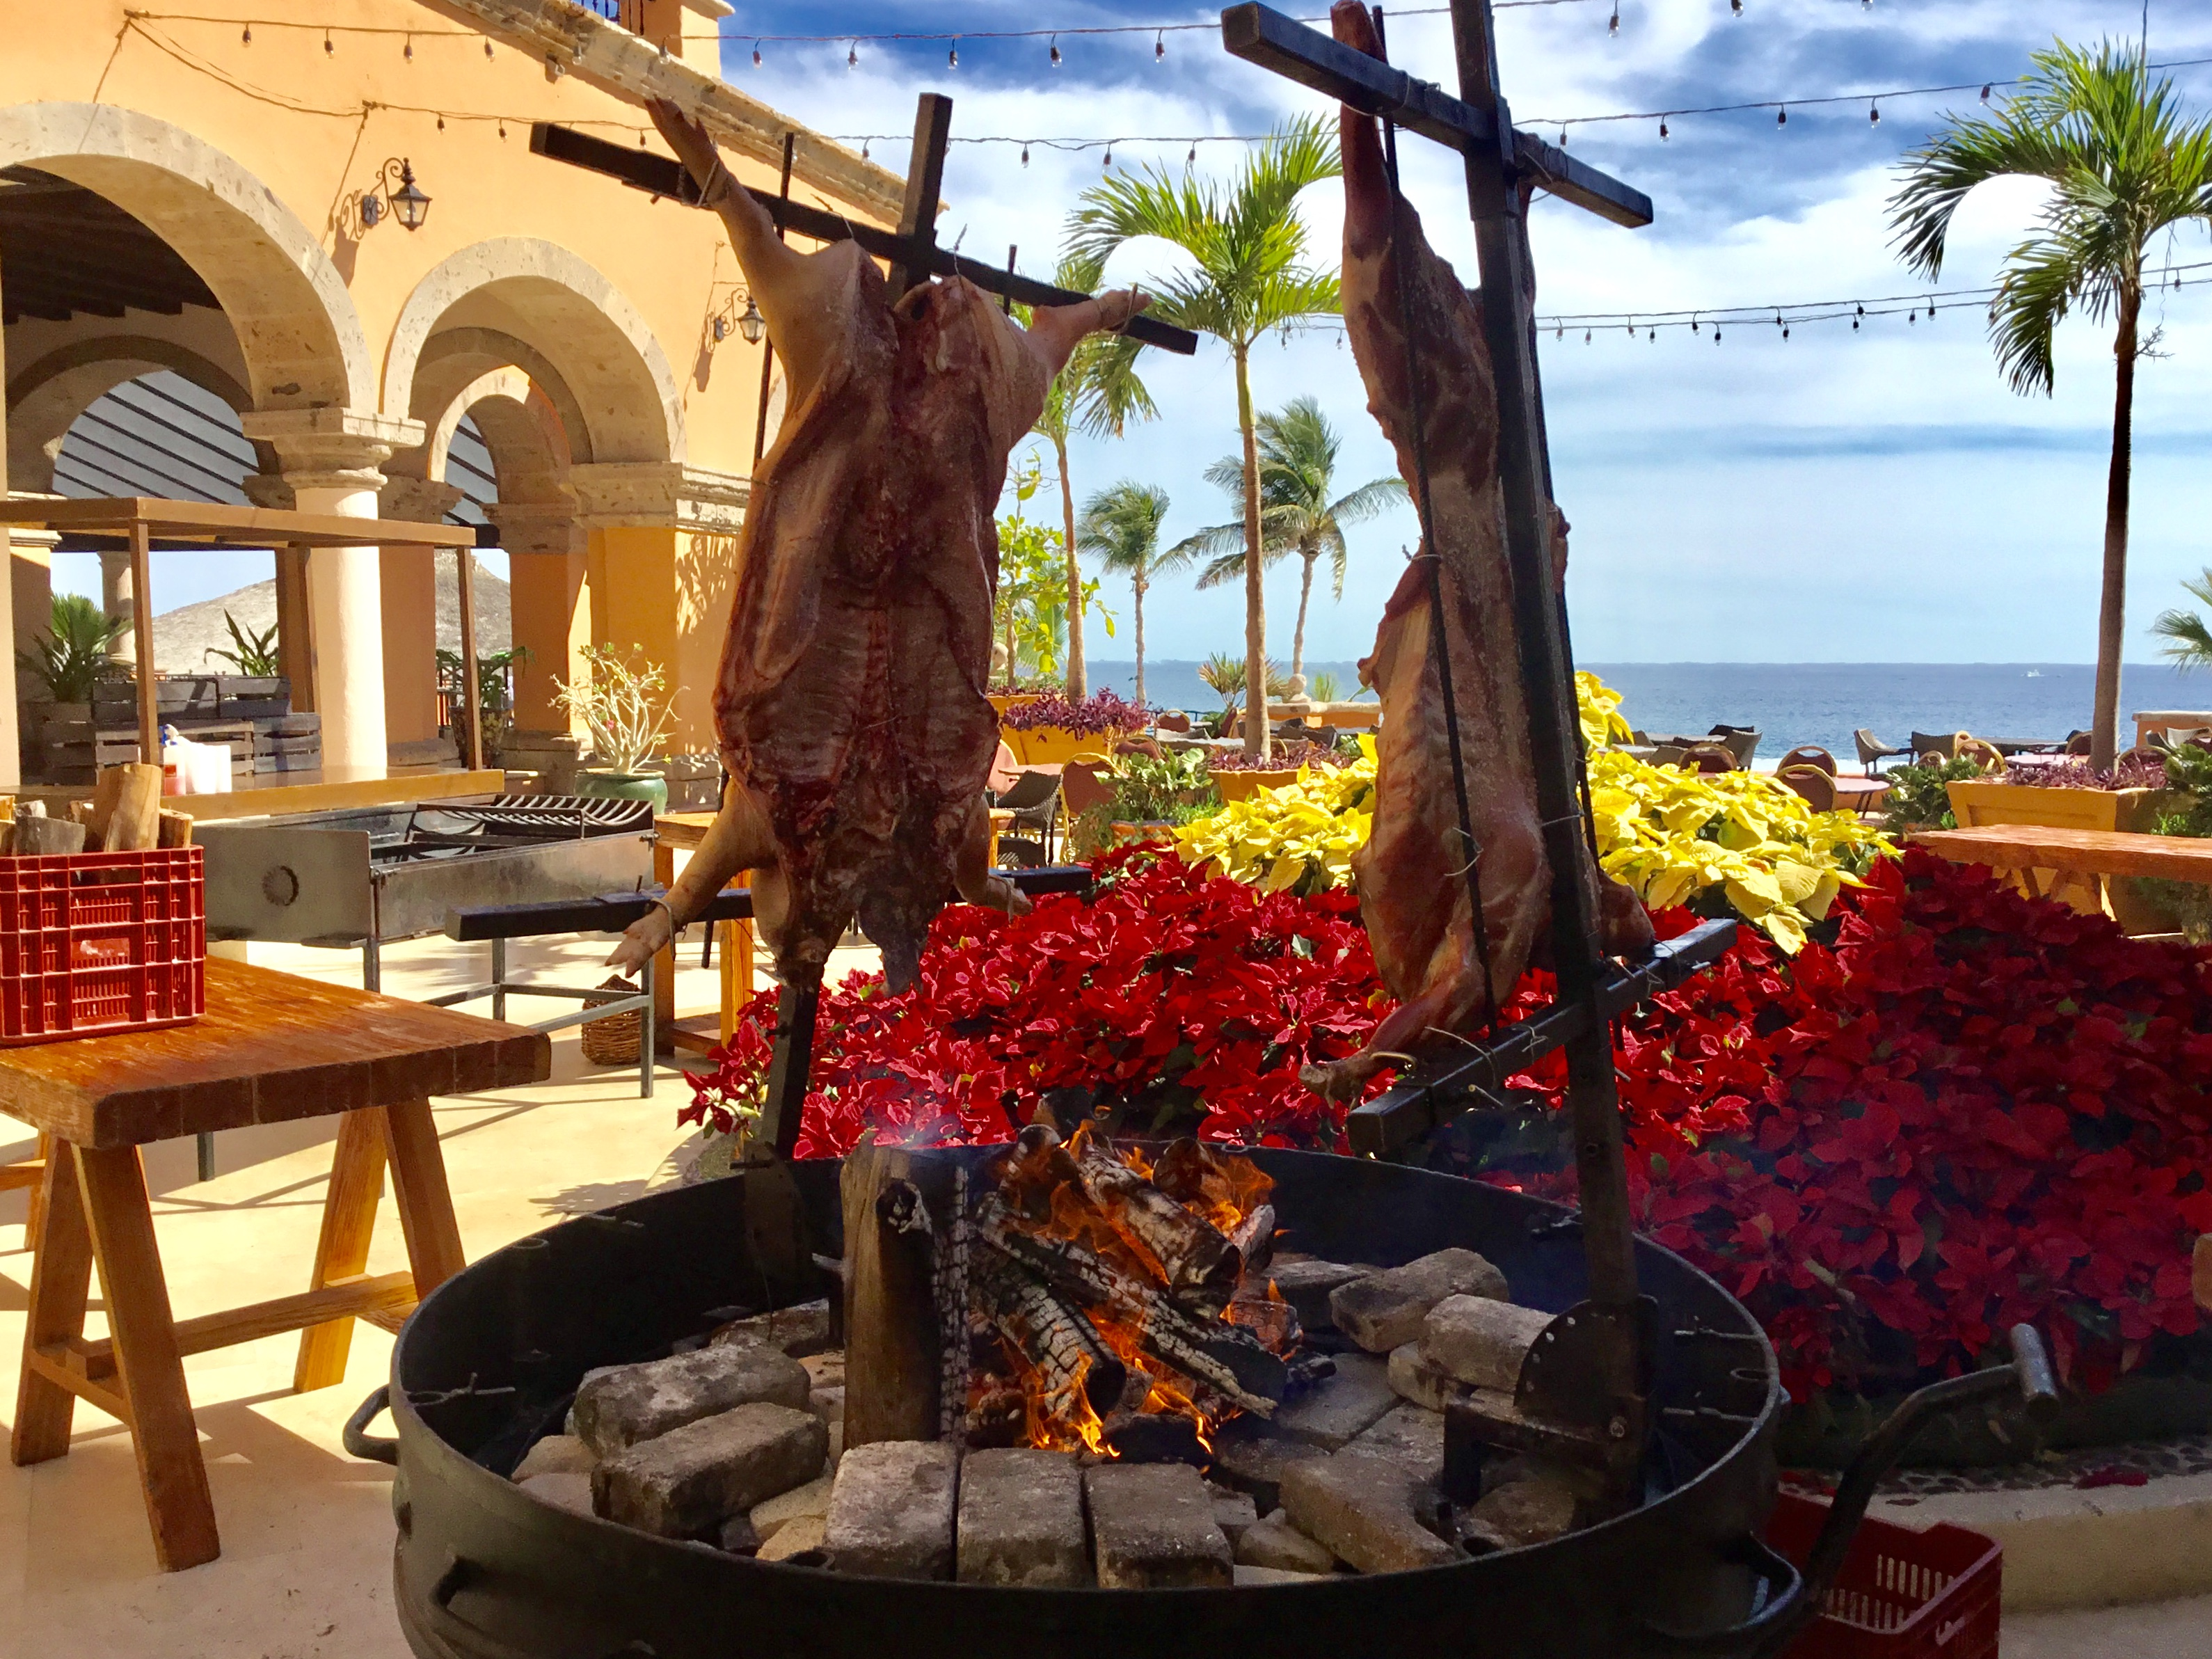 New Year's Eve in Los Cabos, Mexico